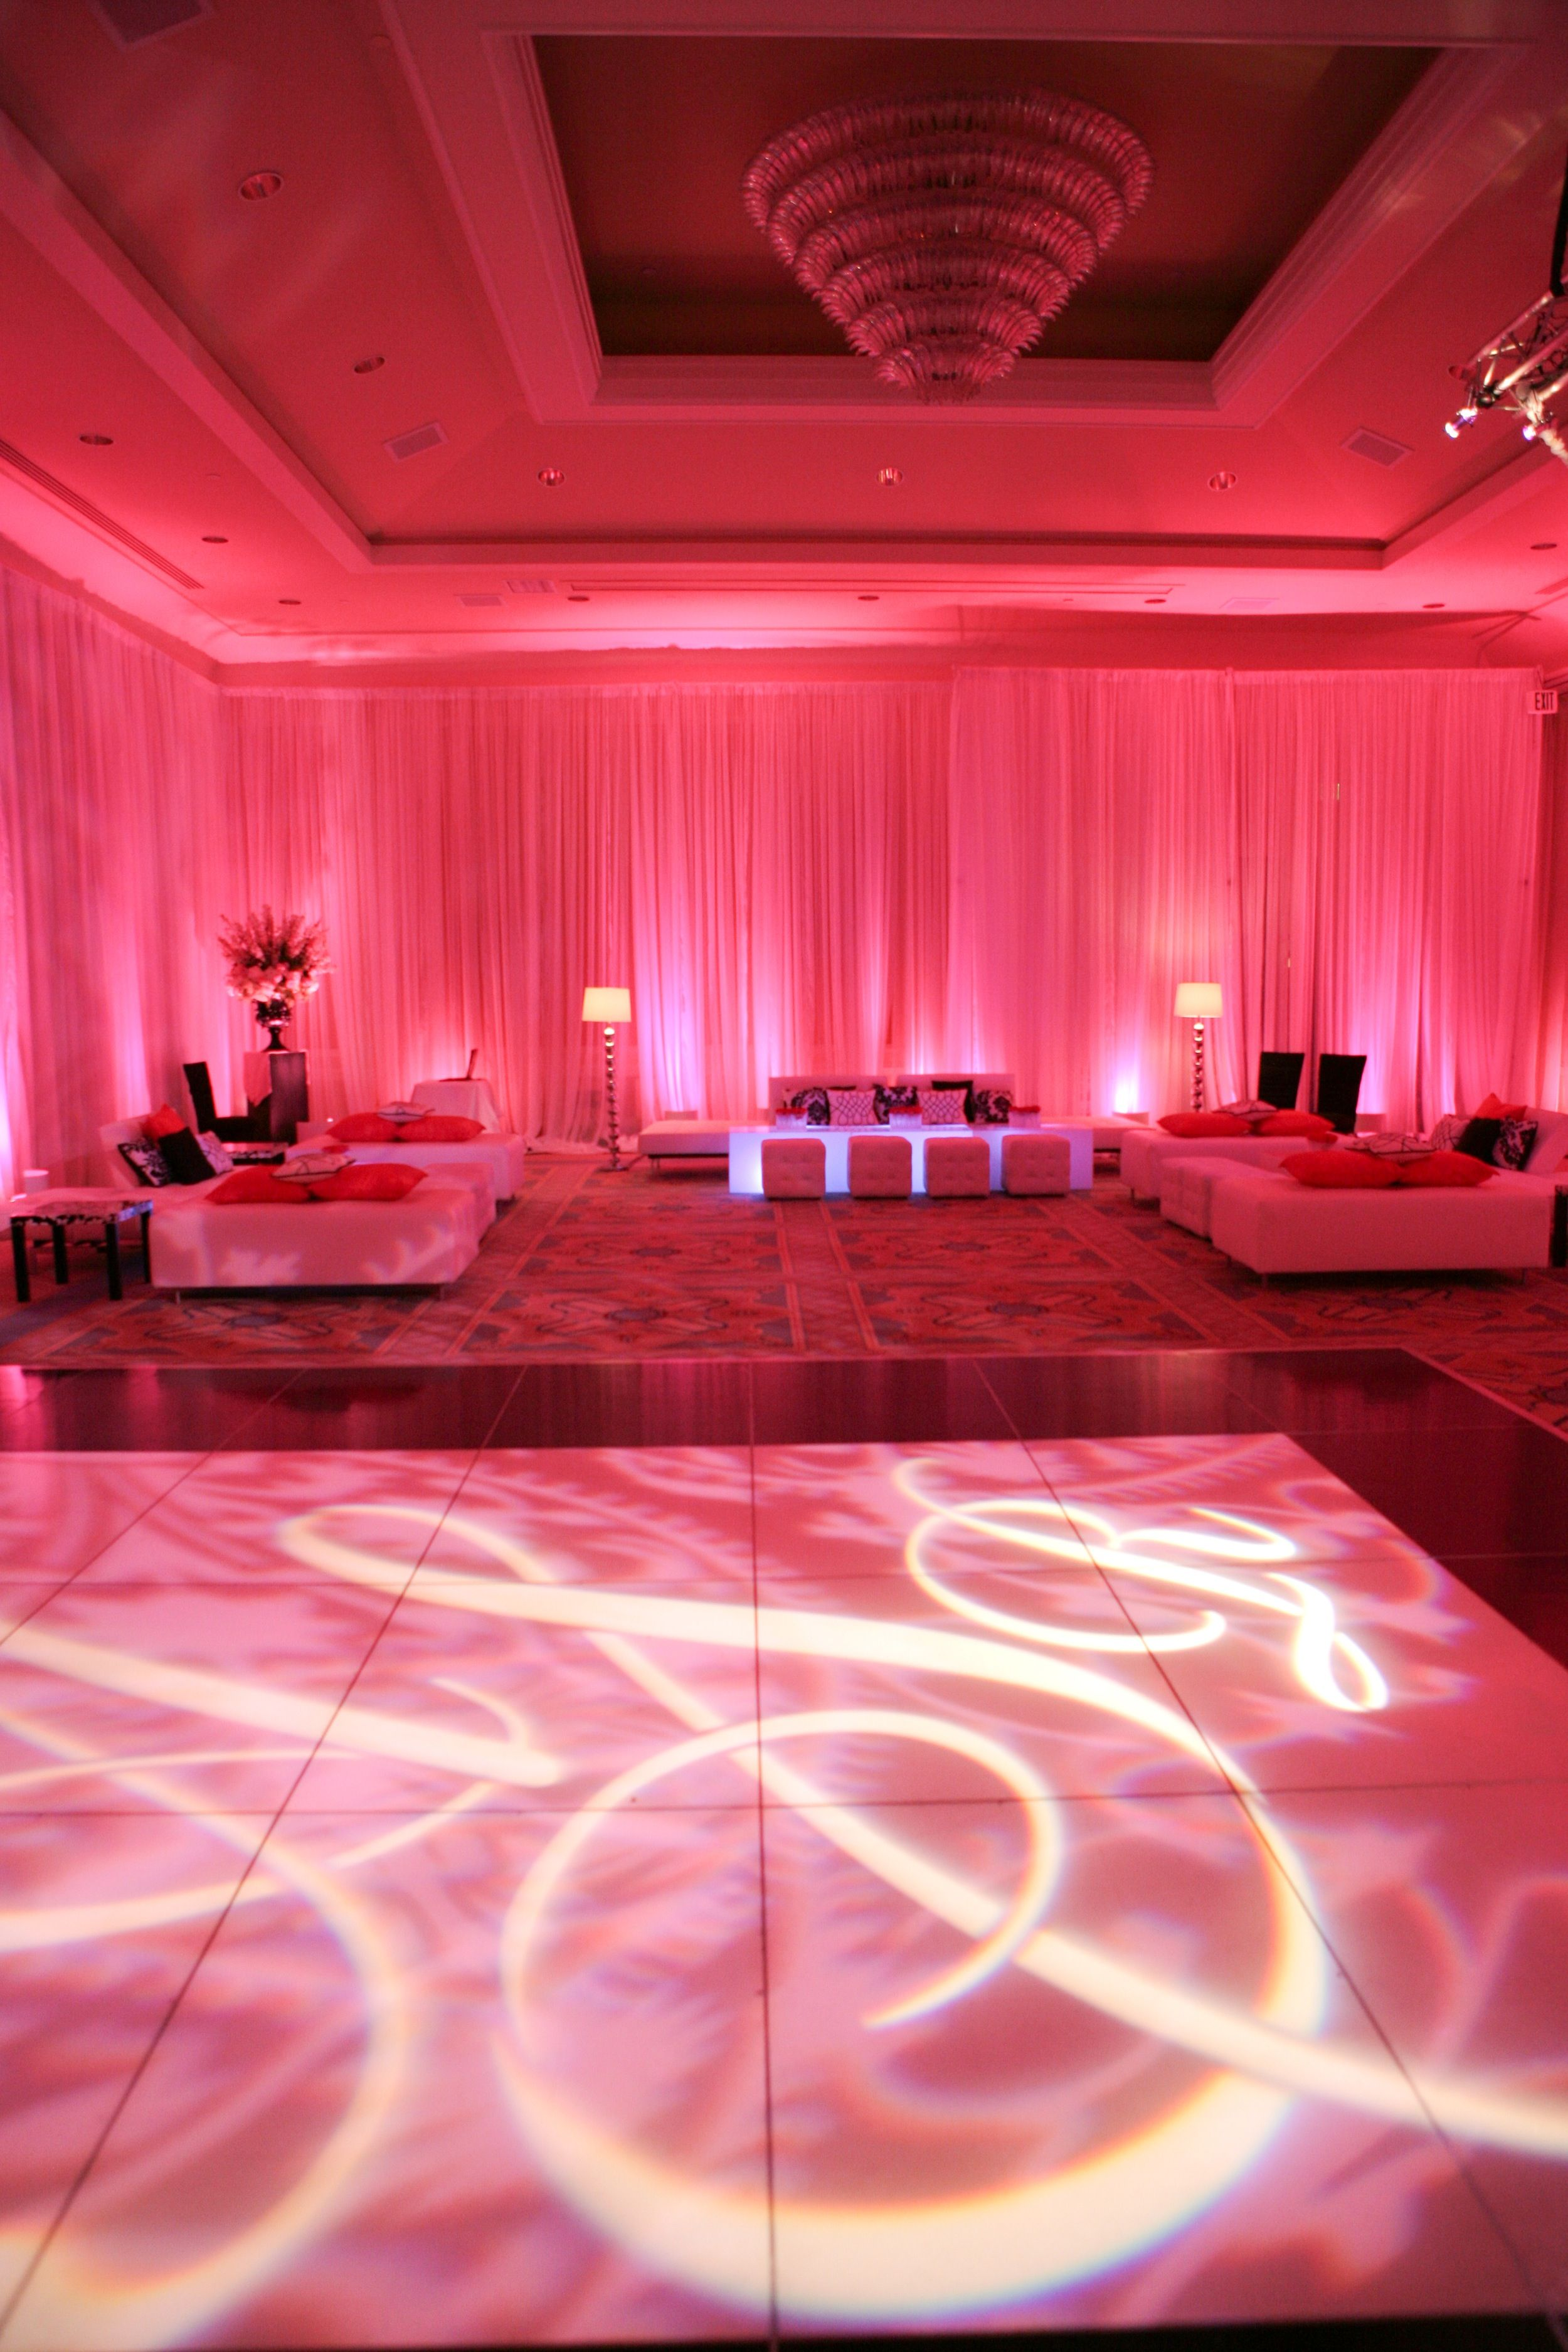 Enhanced Lighting divided the Four Seasons Ballroom into two rooms ...